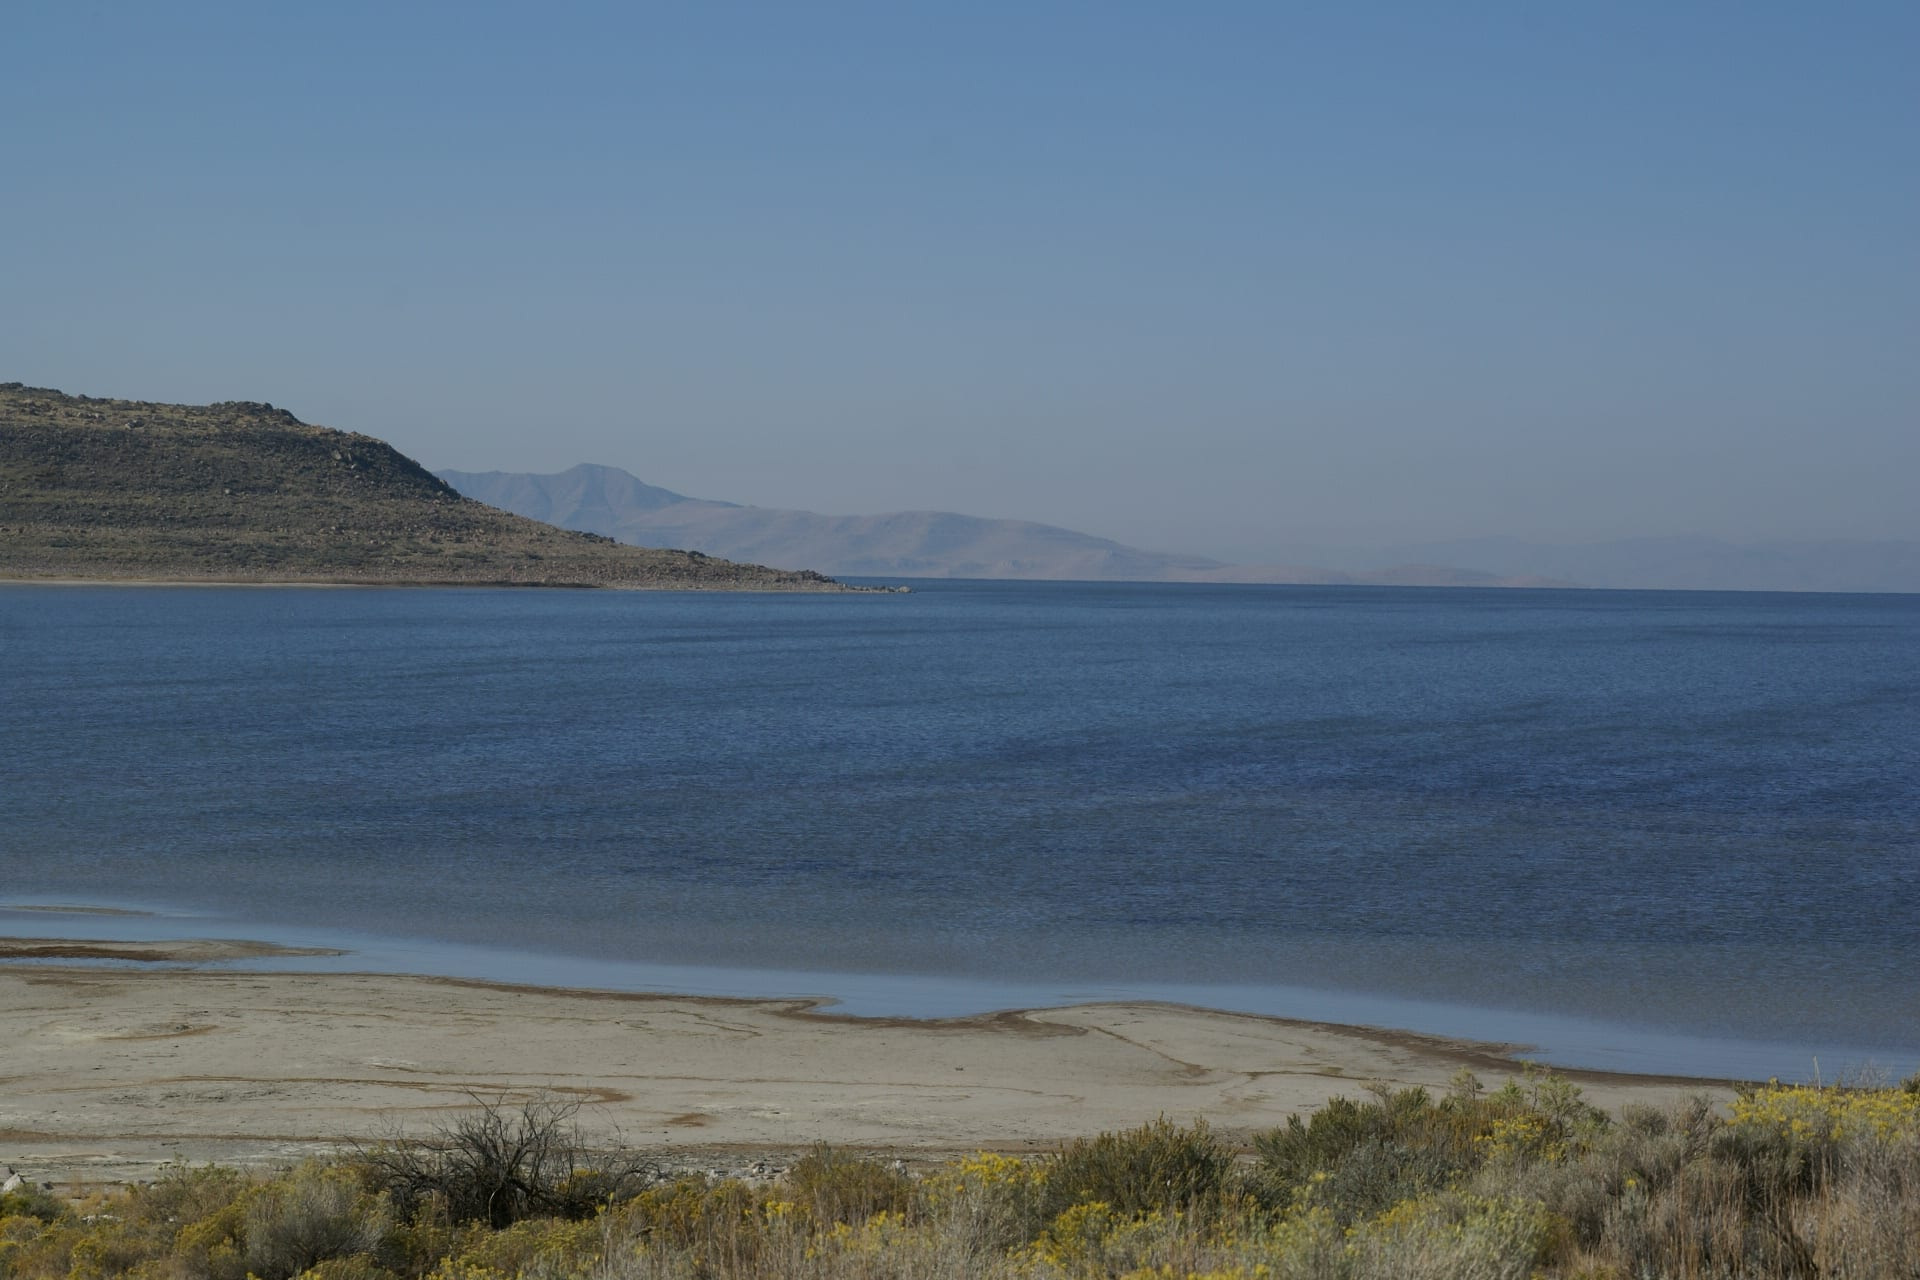 The Great Salt Lake is drying up.